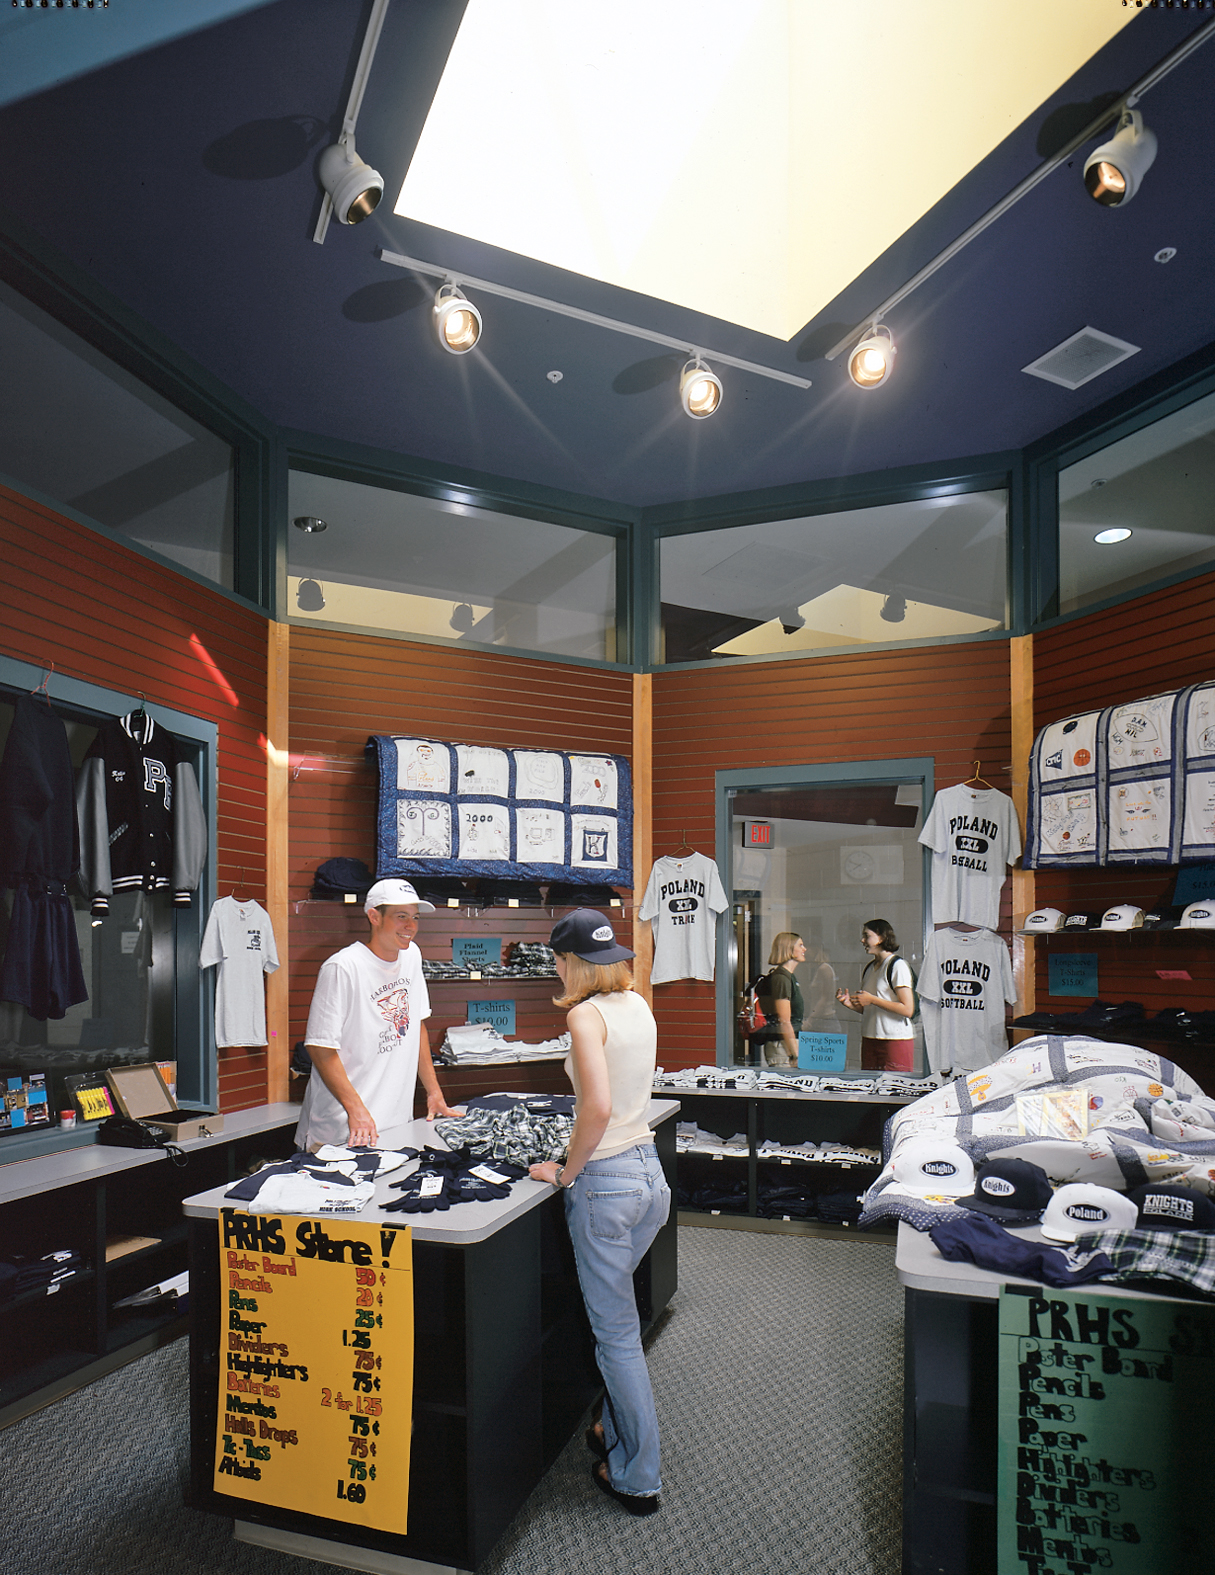 The Knights school store, run by students, is a bright, prominent kiosk in the commons.